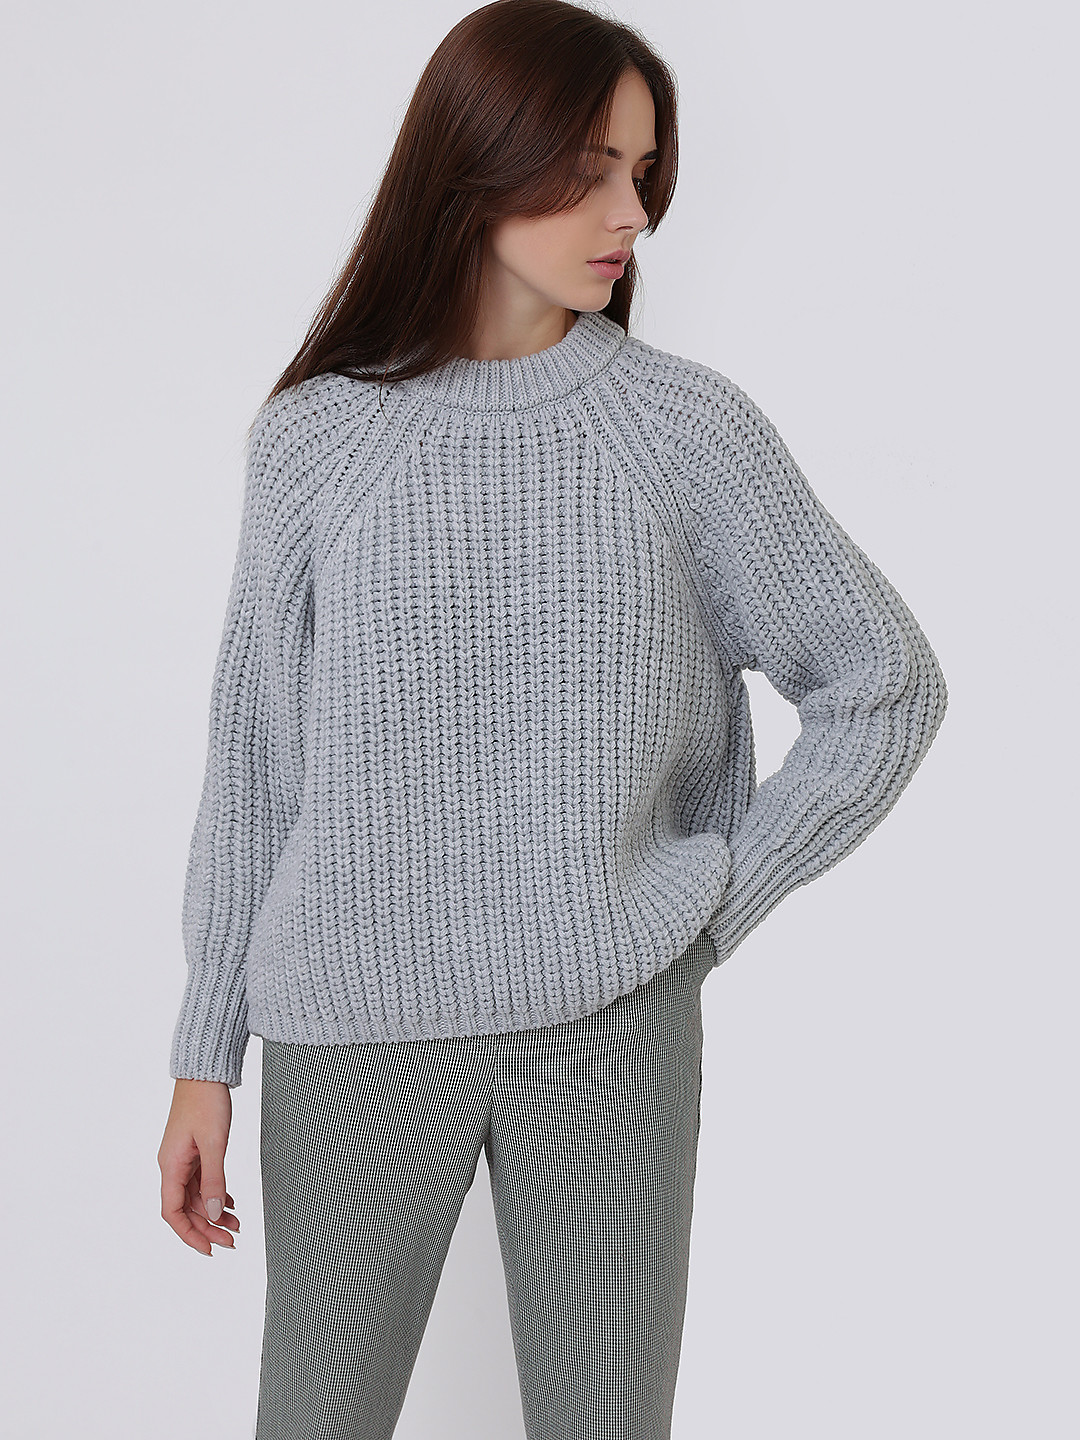 Джемперы Aim Clothing J 301 PHR 386 light grey